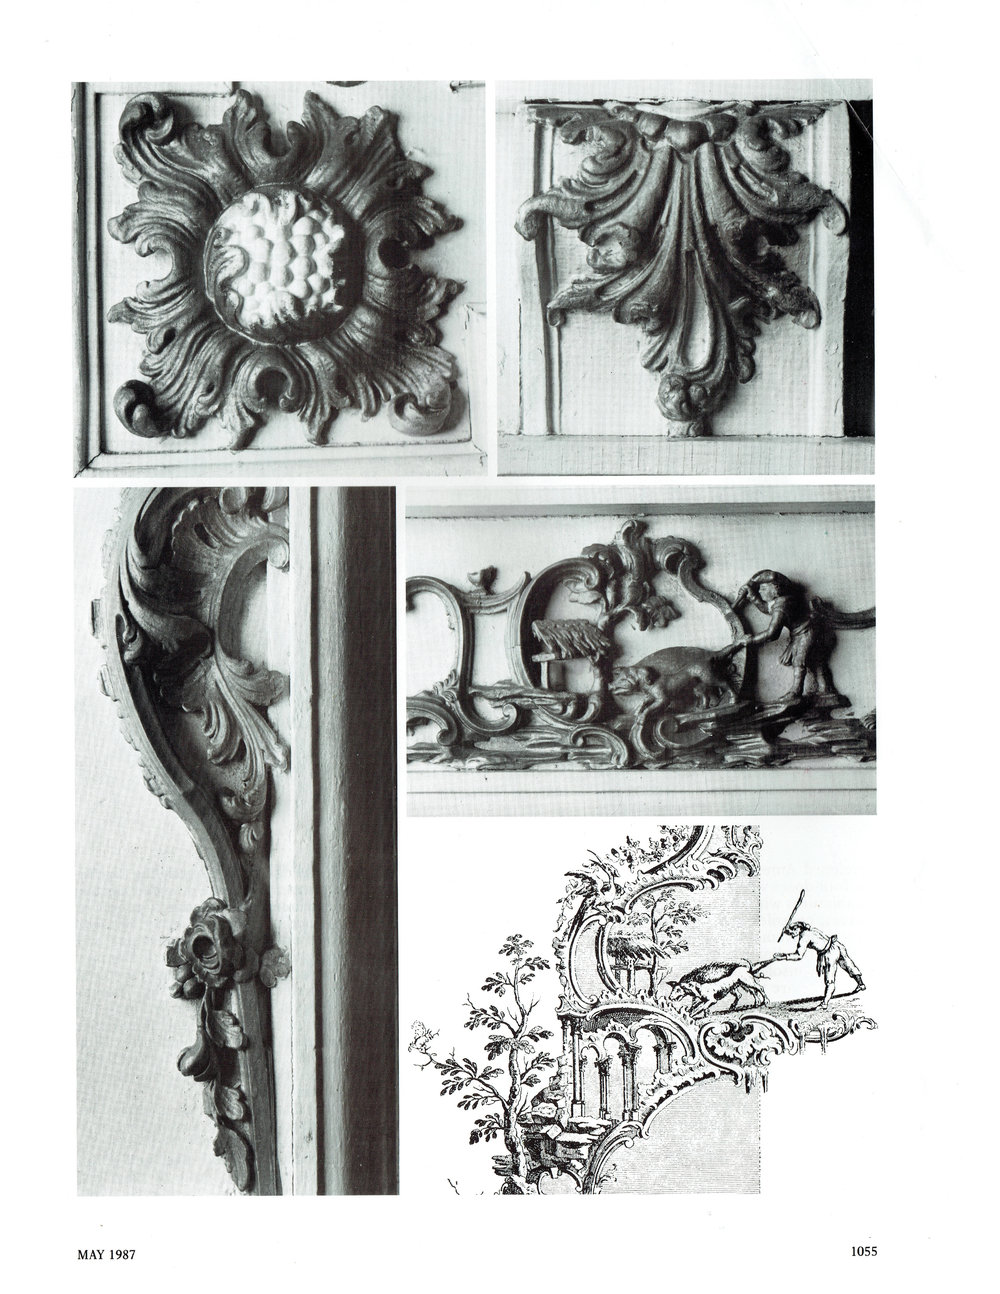 2018.01.16 CPF Antiques Article 13 - Pg1055.jpg